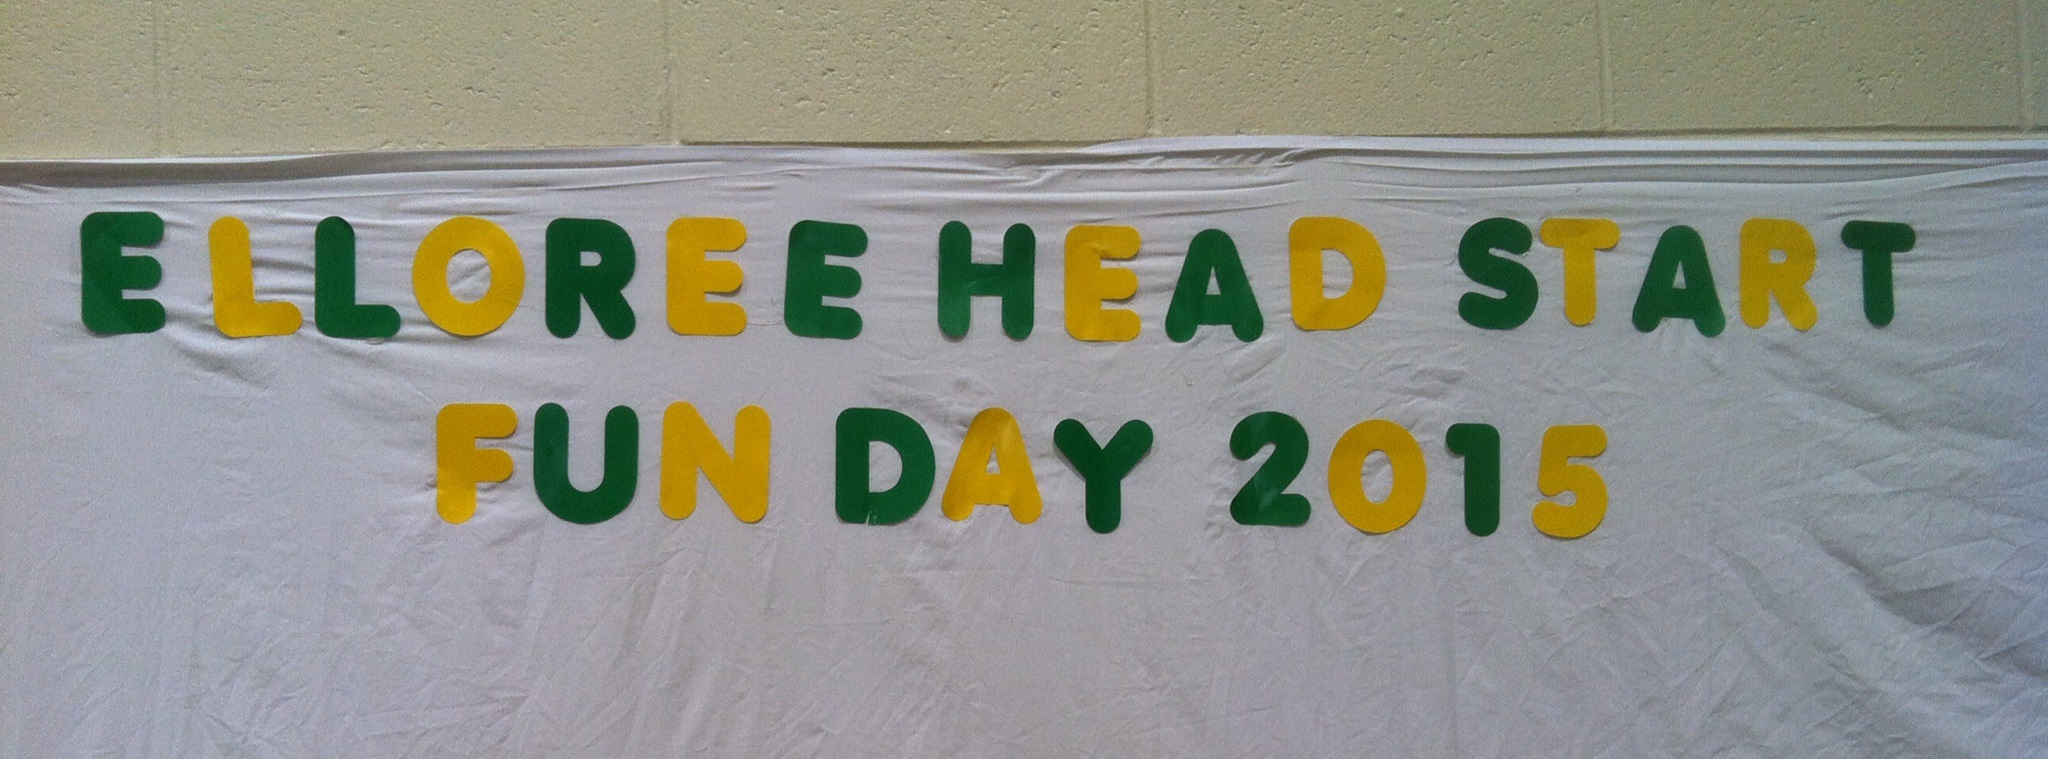 Elloree Headstart Fun Day 2015